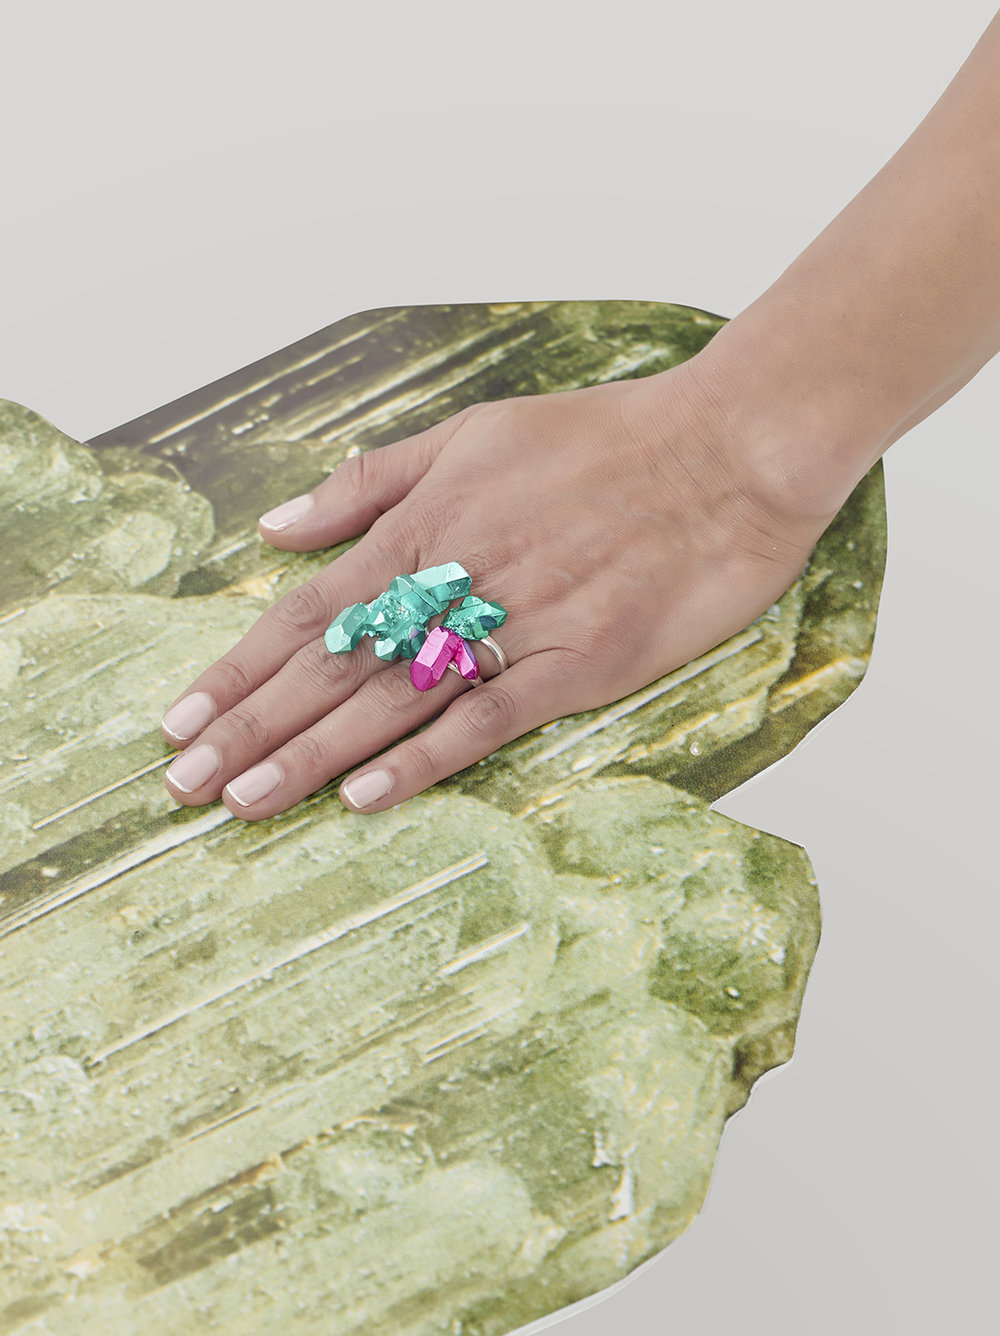 HotRocks Trigonal Cluster Rings in Turquoise and Pink Low Res.jpg